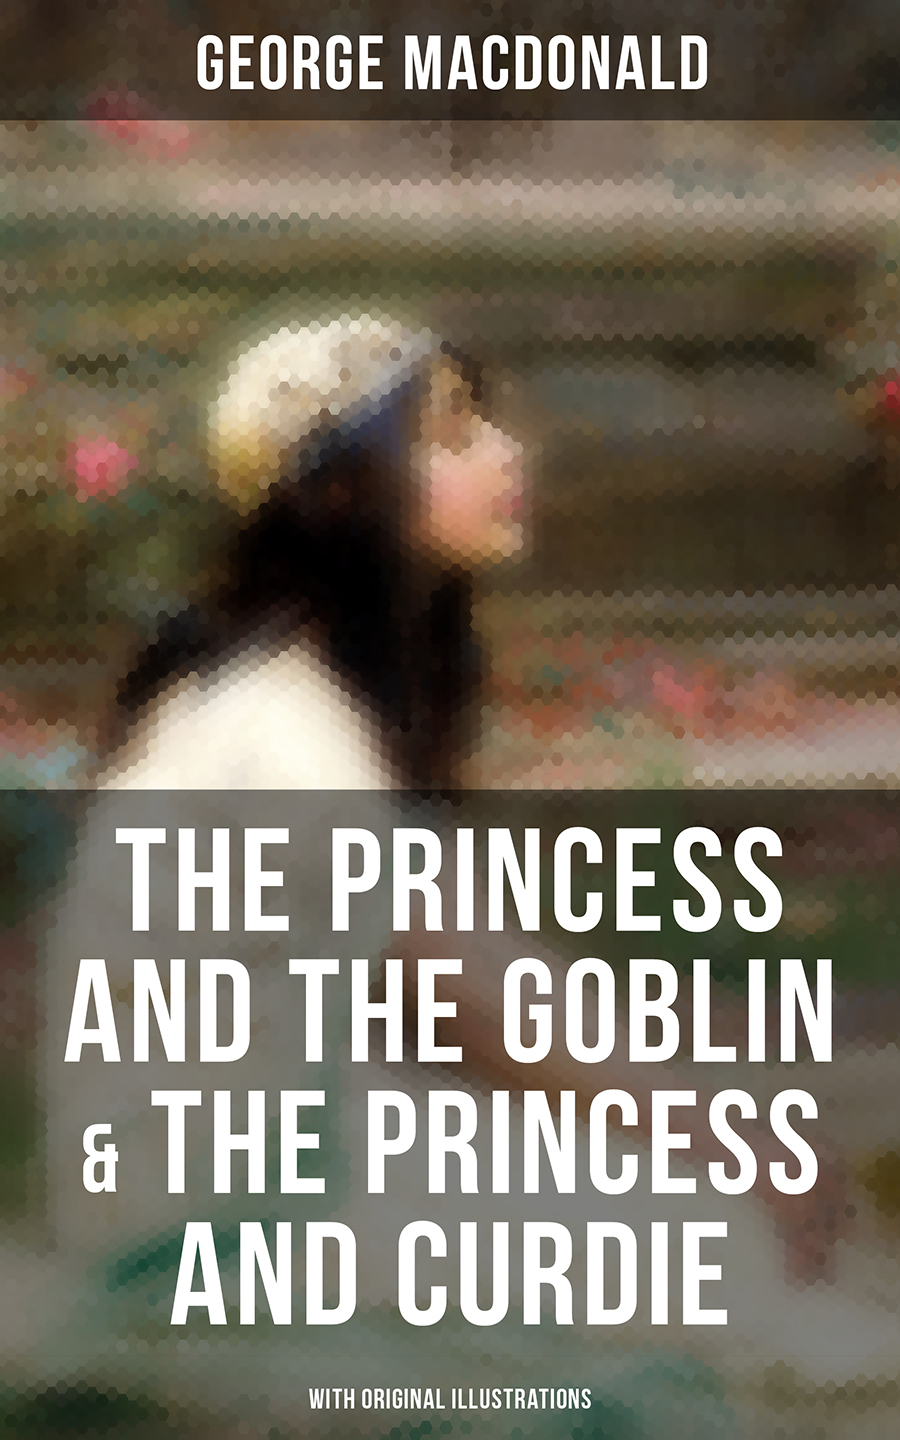 George MacDonald The Princess and the Goblin & The Princess and Curdie (With Original Illustrations) macdonald george the princess and curdie yesterday s classics